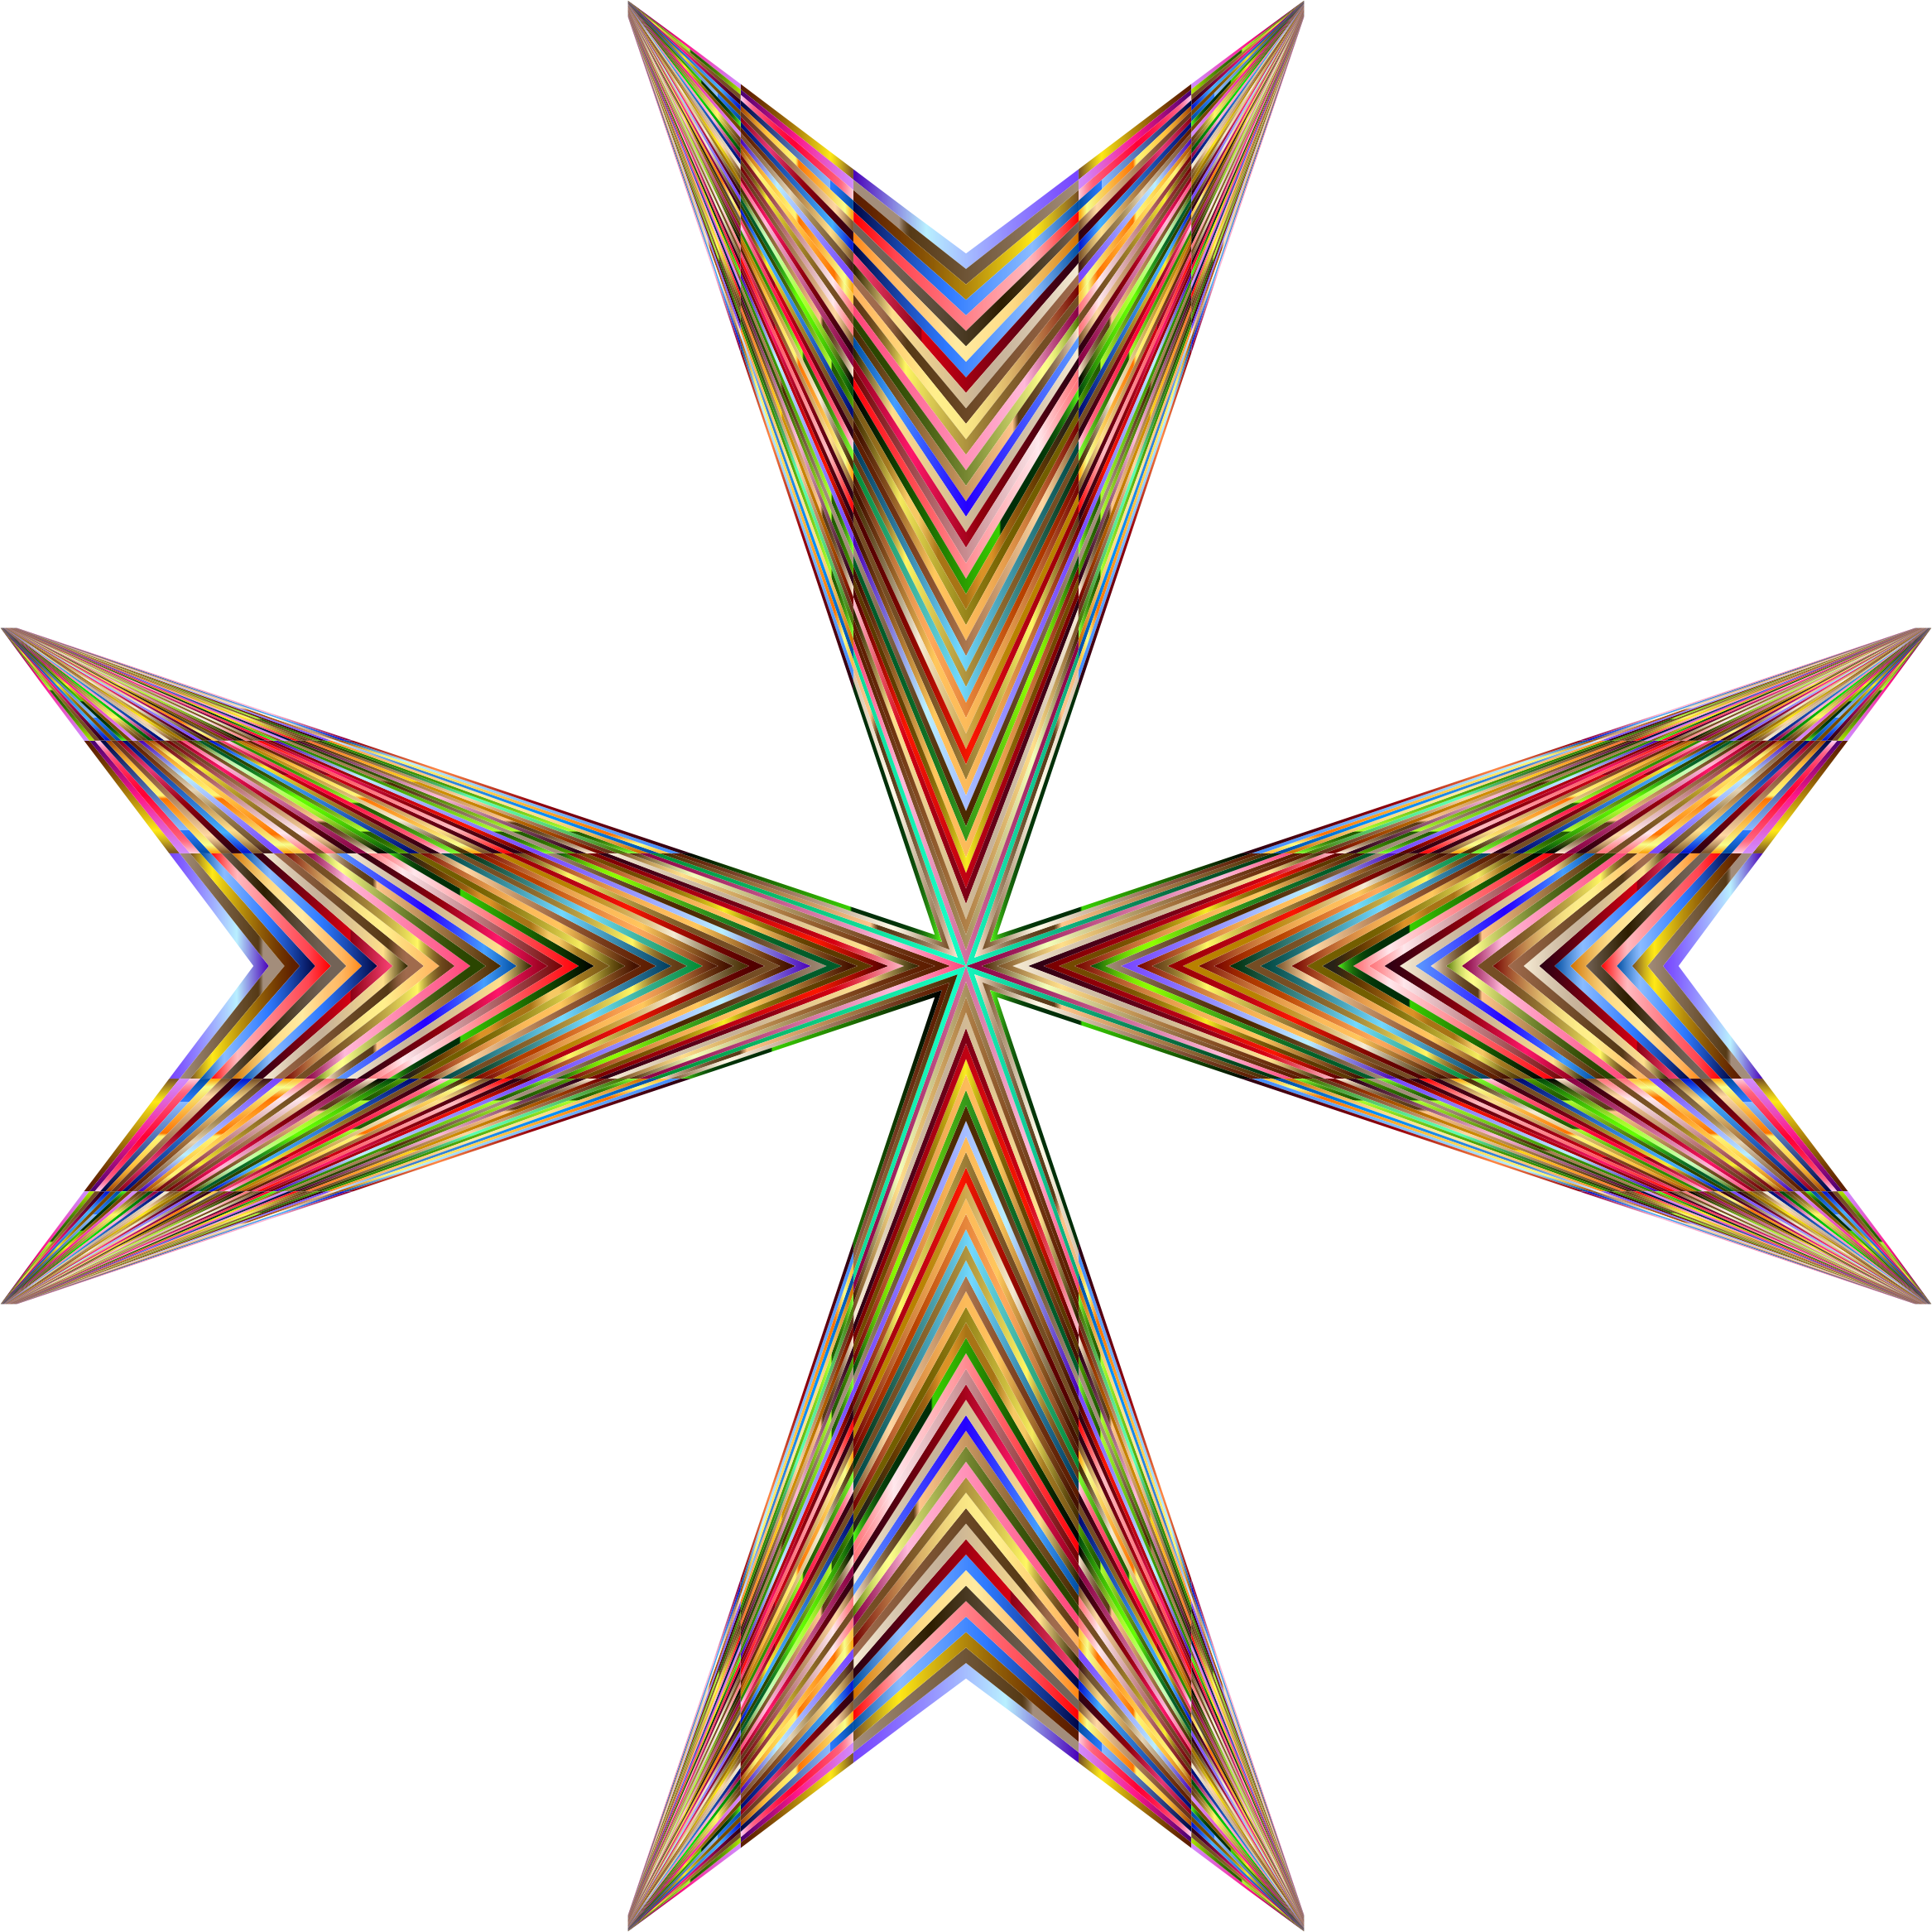 Vibrant Maltese Cross by GDJ